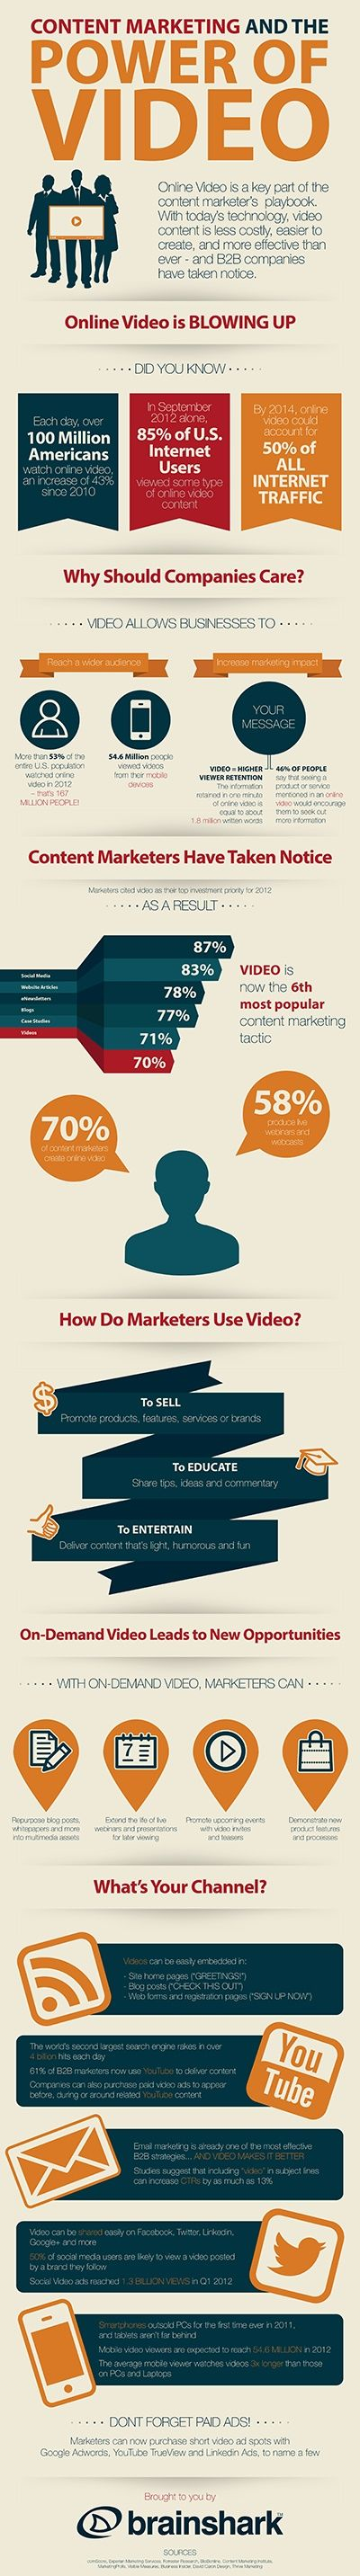 La importancia del video en el Social Media Marketing | Lecturas de Marketing en Internet